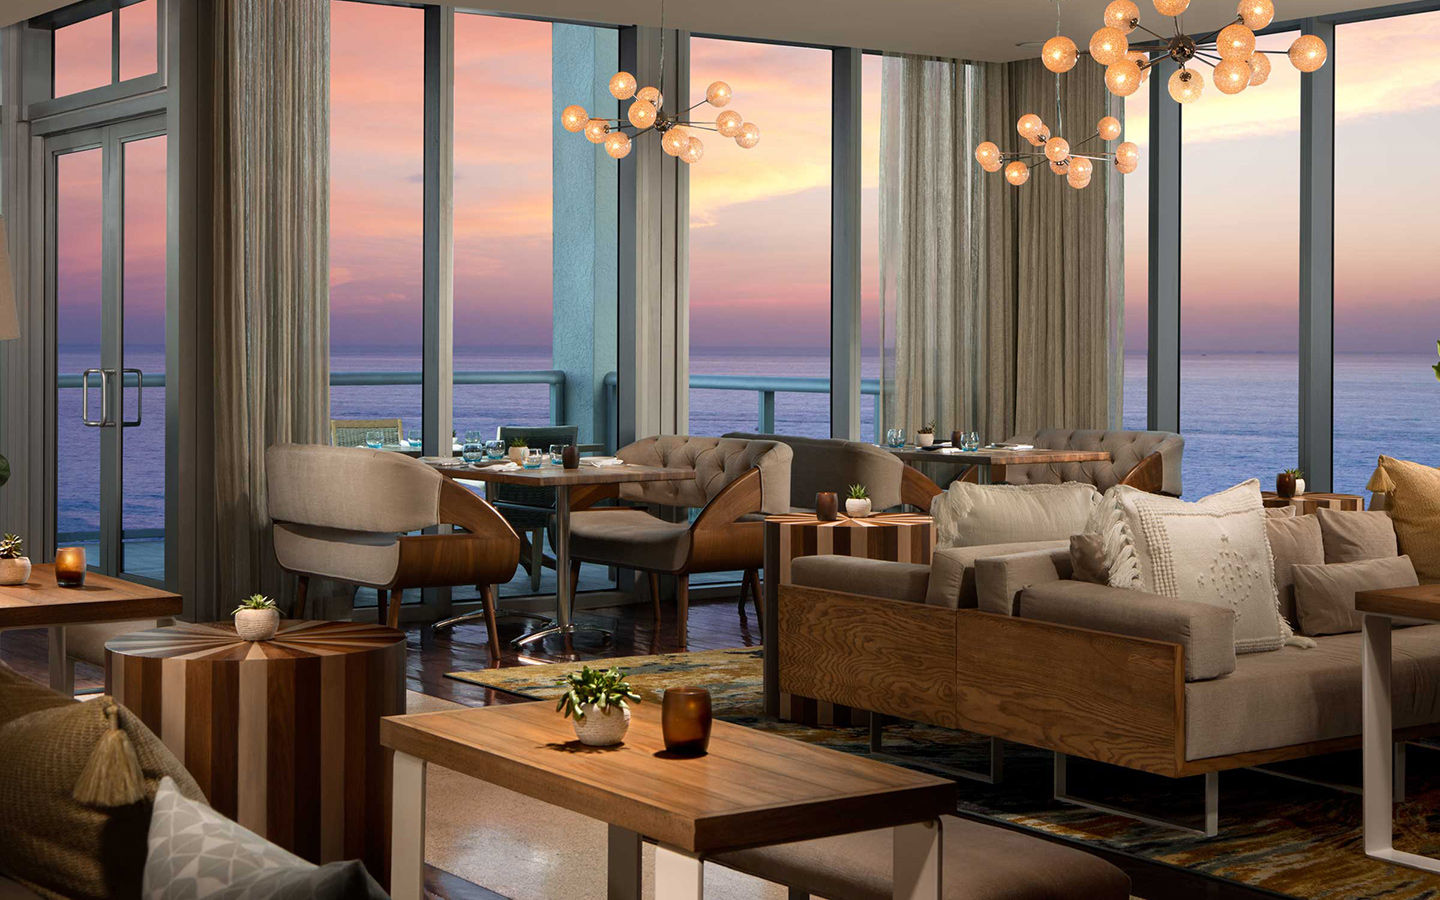 Best Places to Eat in Sunny Isles Beach